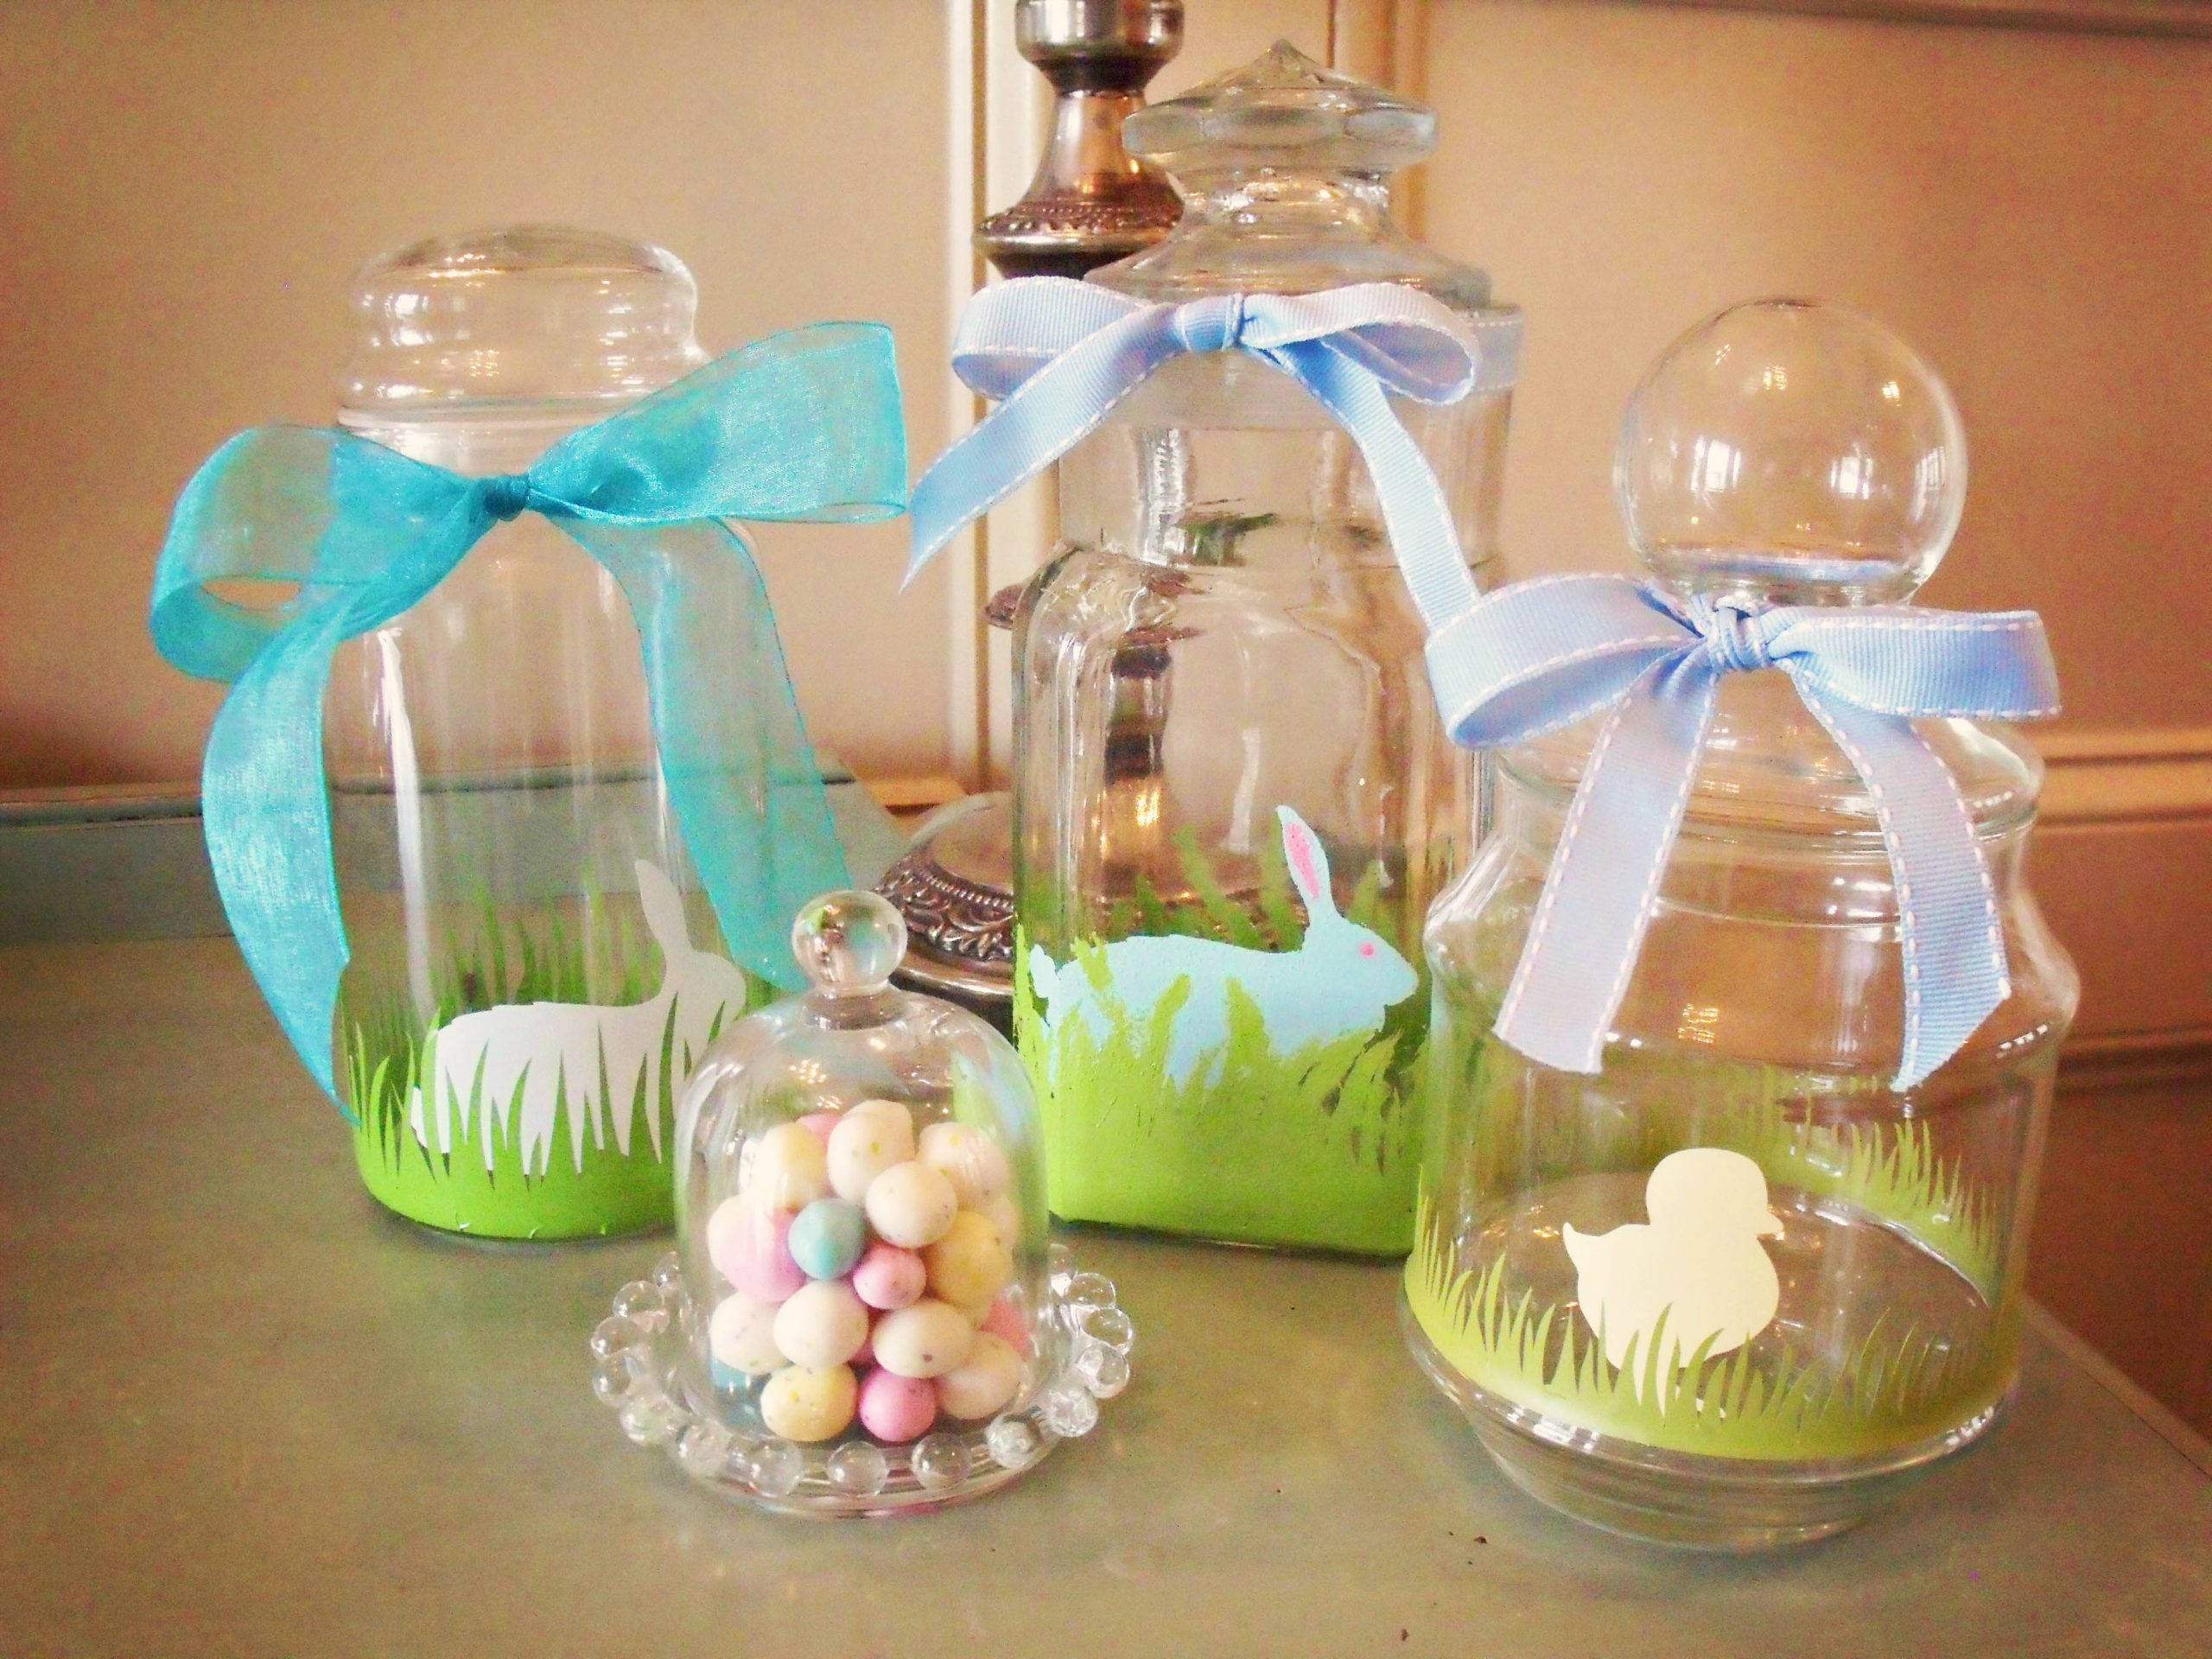 decorated easter jars tutorial atta girl says aren t these jars